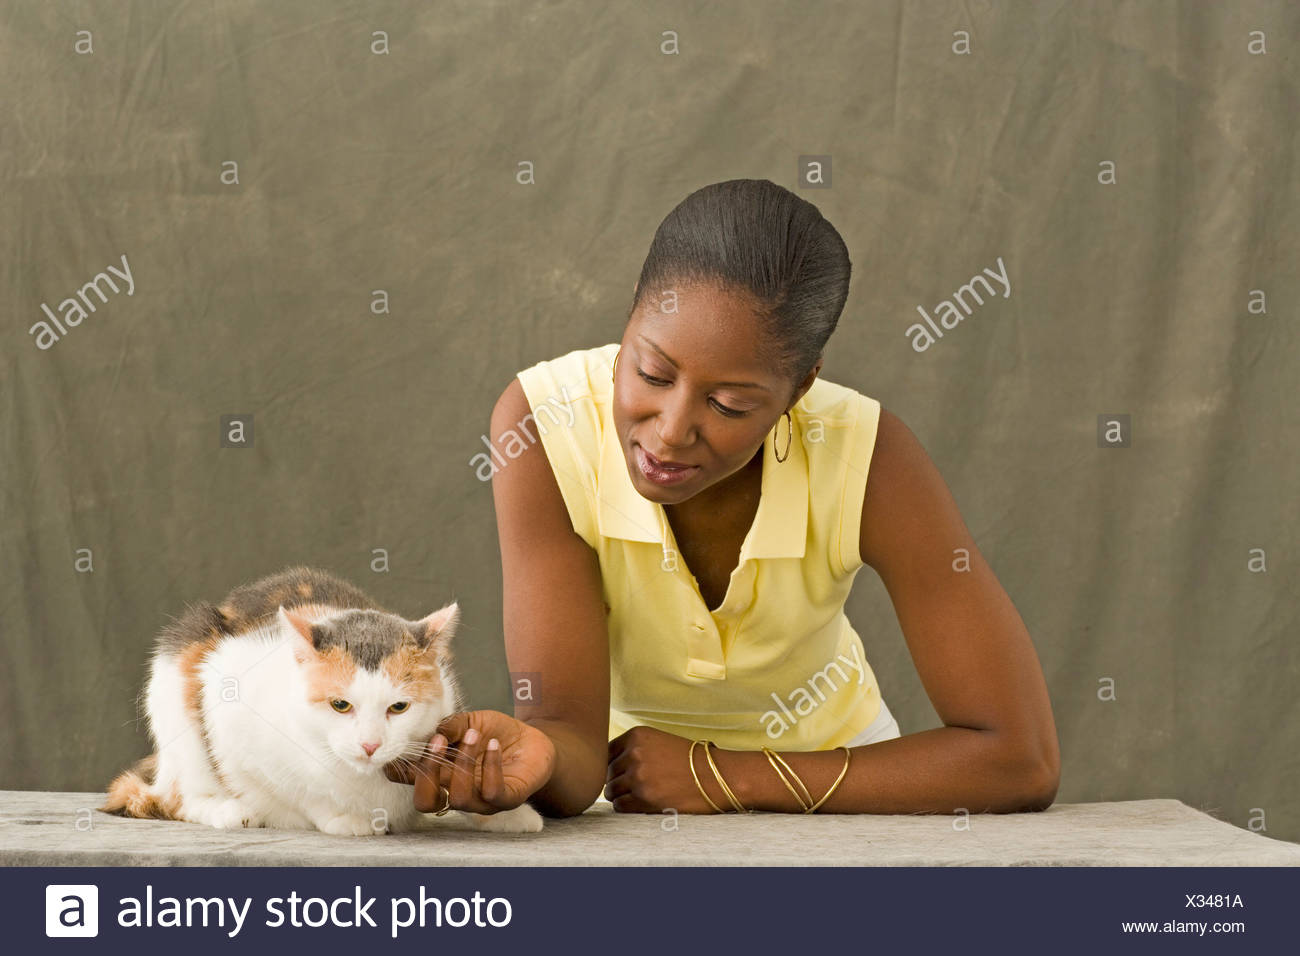 Young woman petting cat - Stock Image